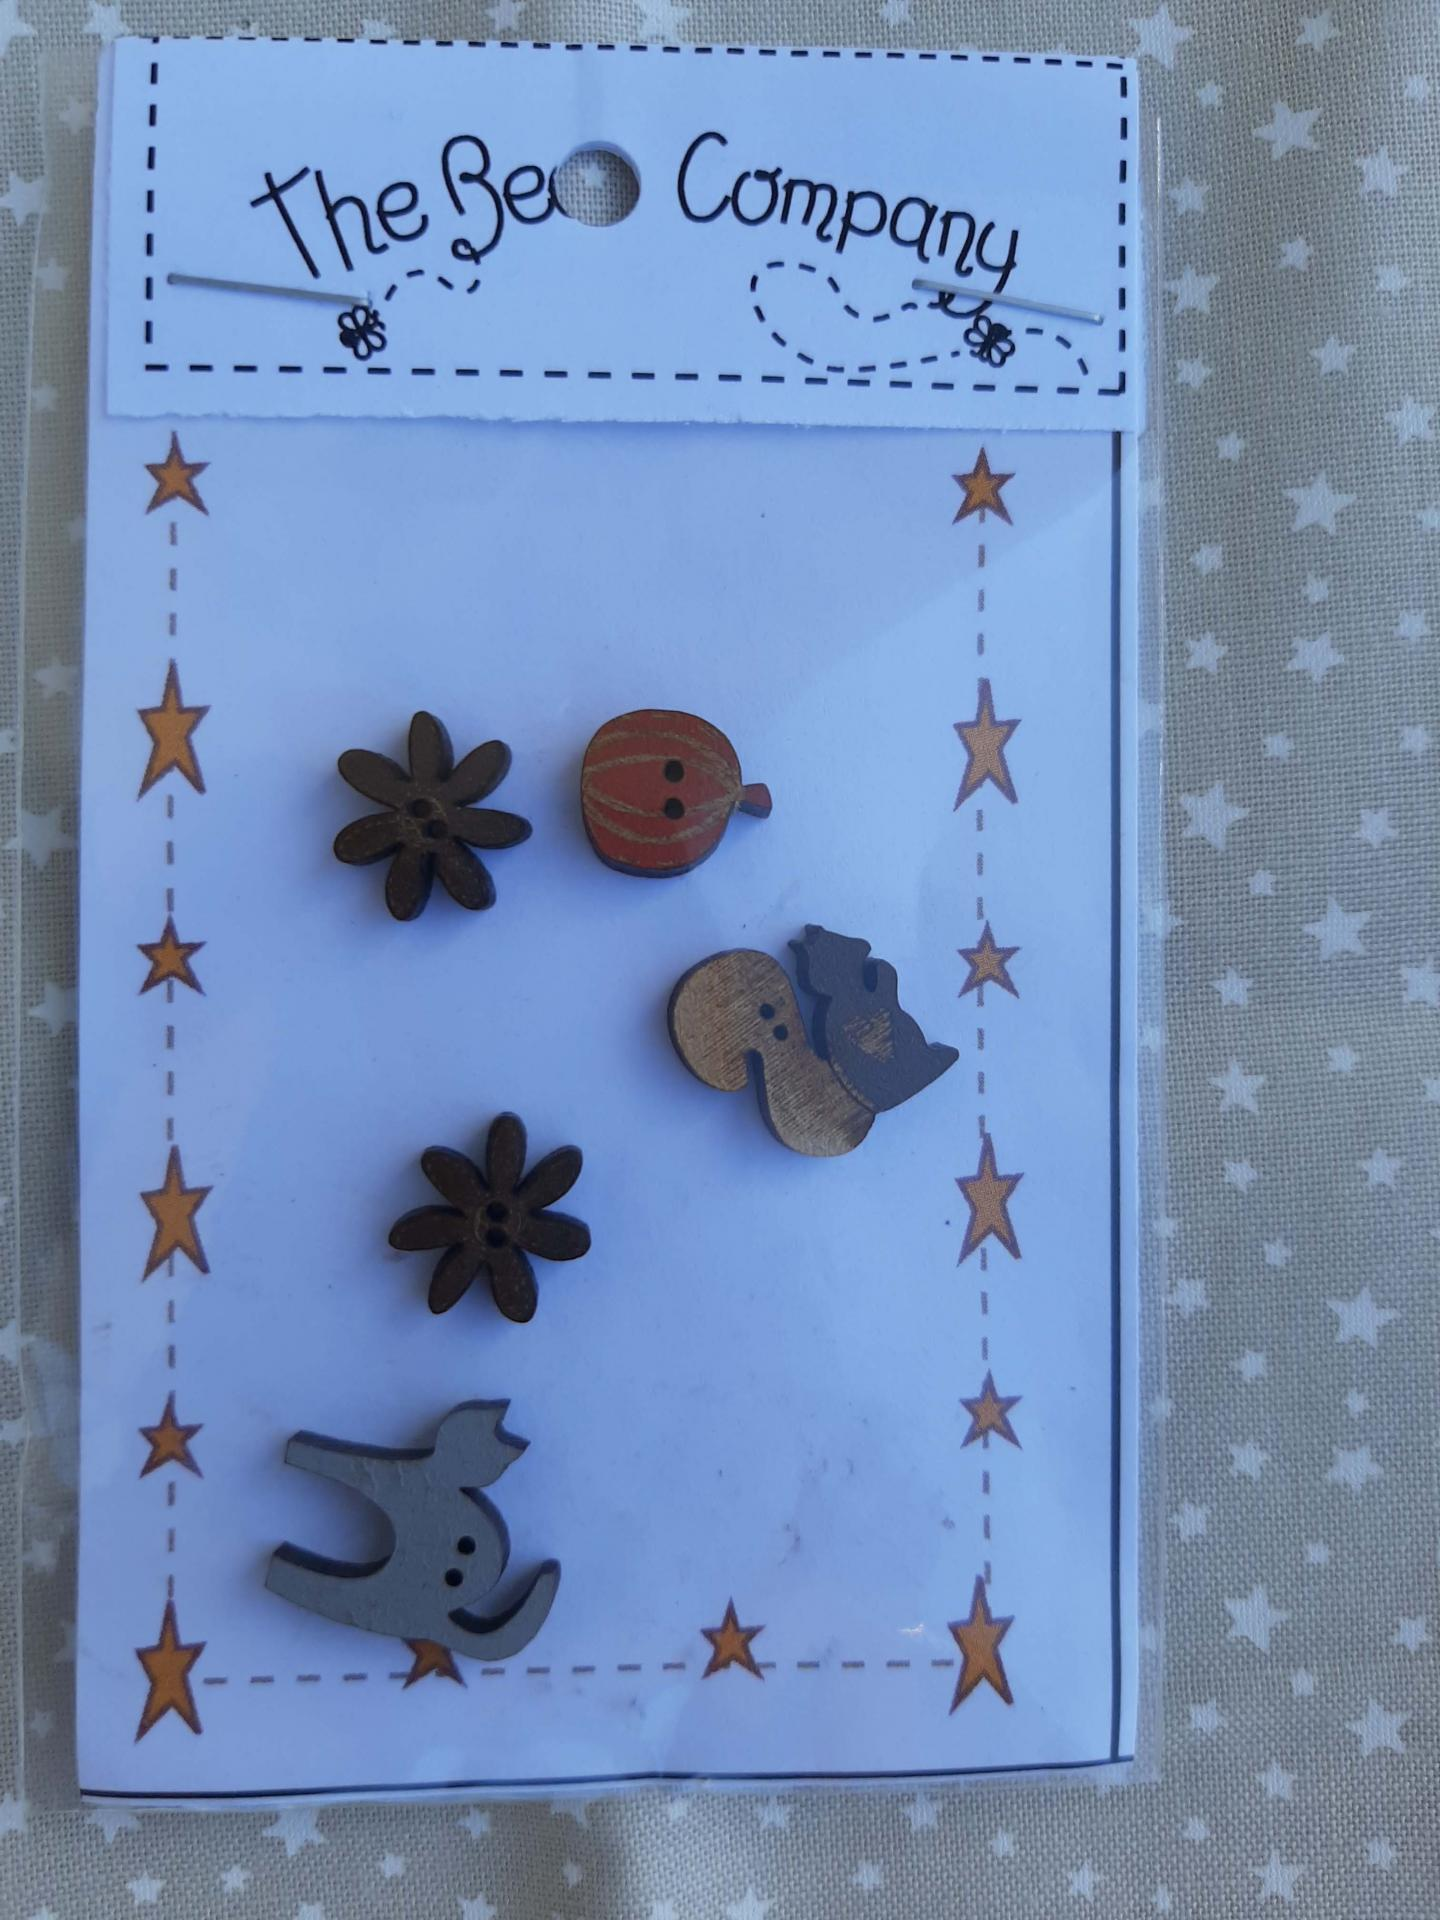 Boutons nichoirs d automne the bee company